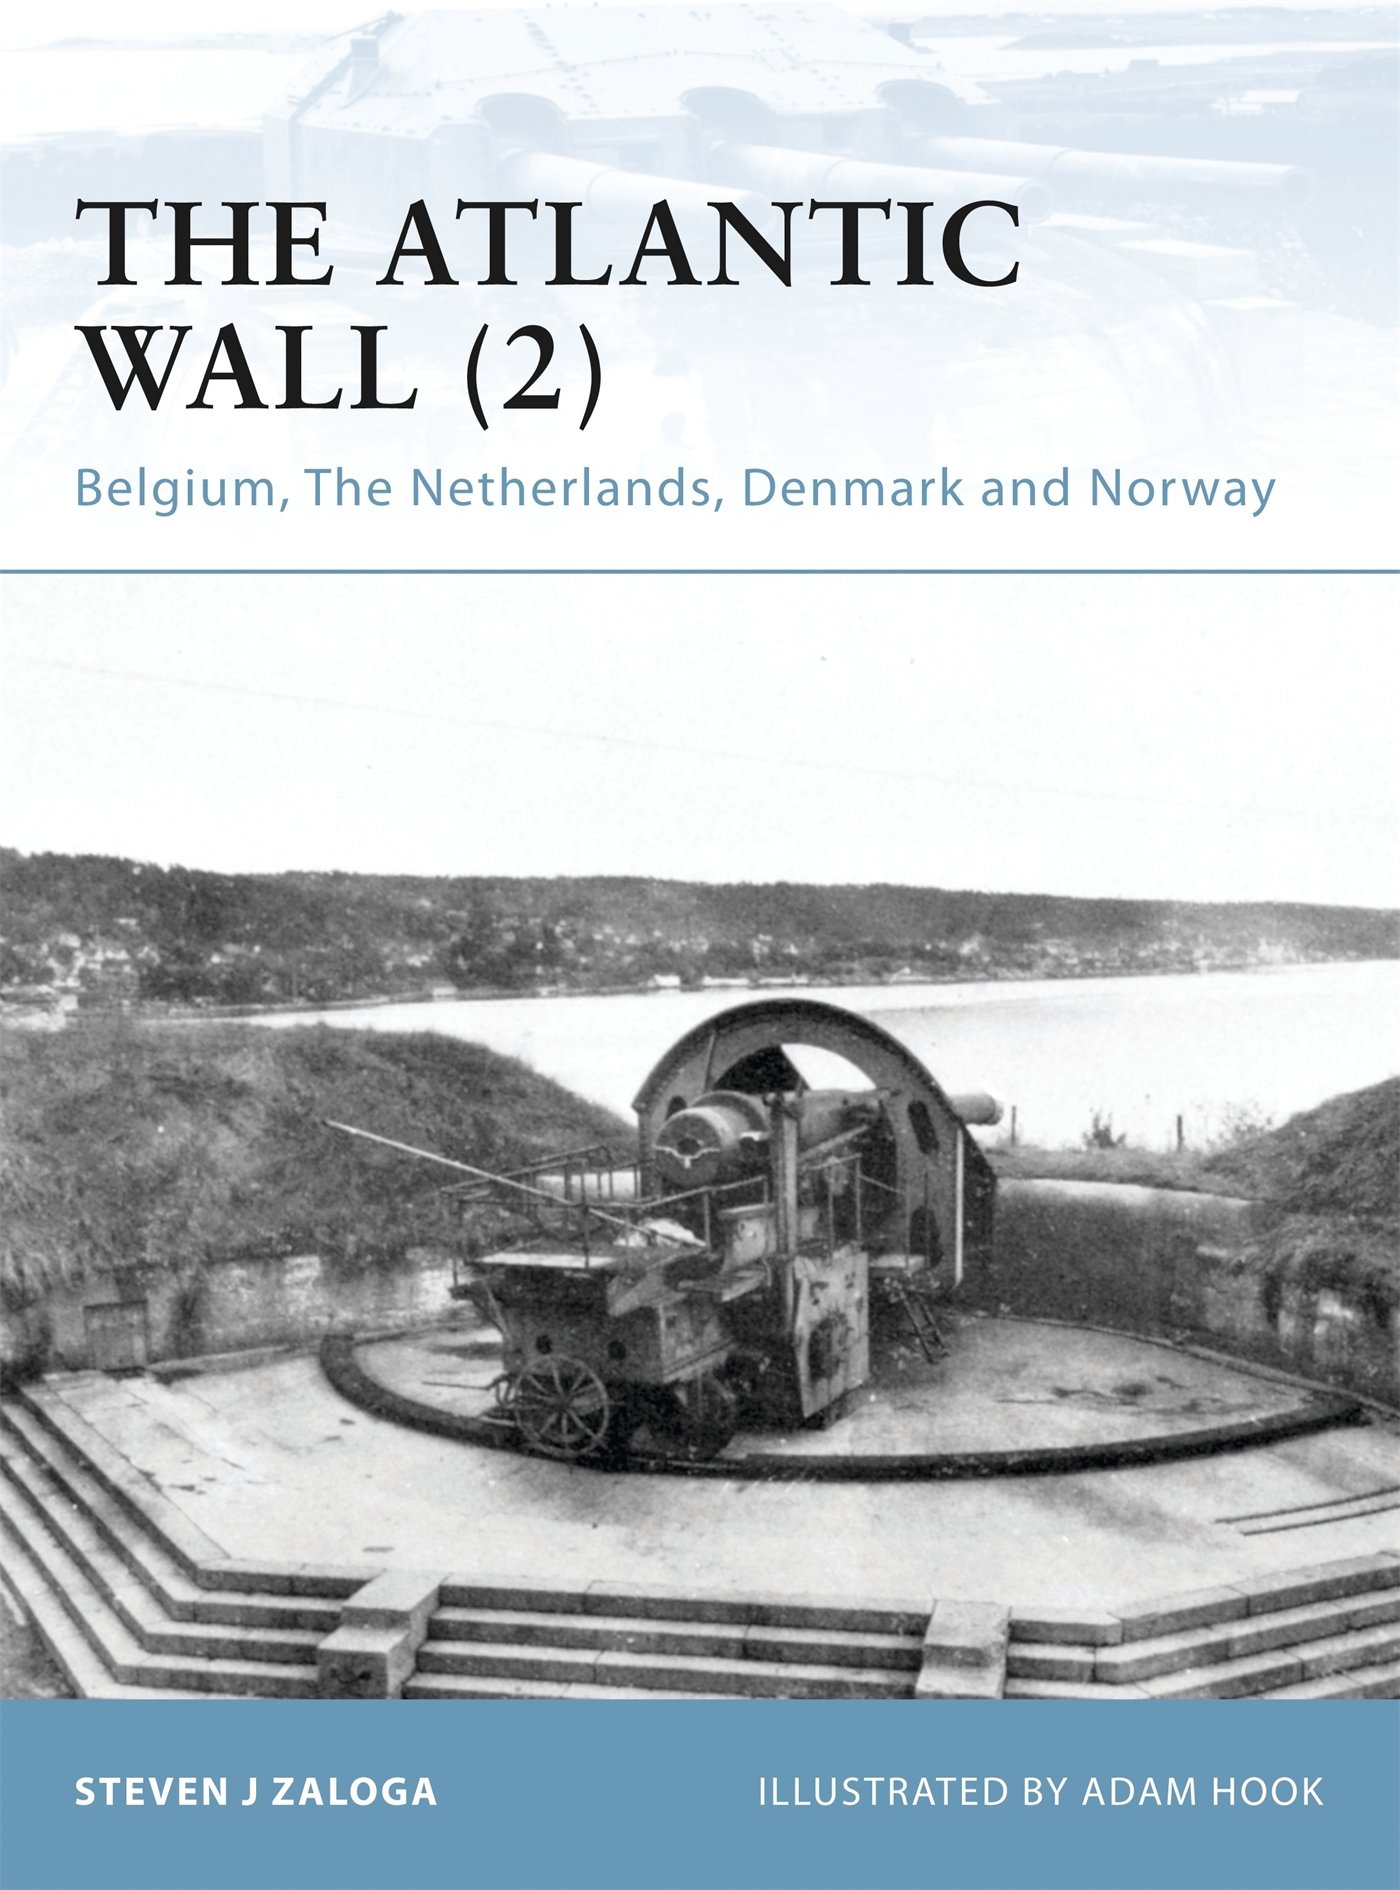 Download The Atlantic Wall (2): Belgium, The Netherlands, Denmark and Norway (Fortress) pdf epub